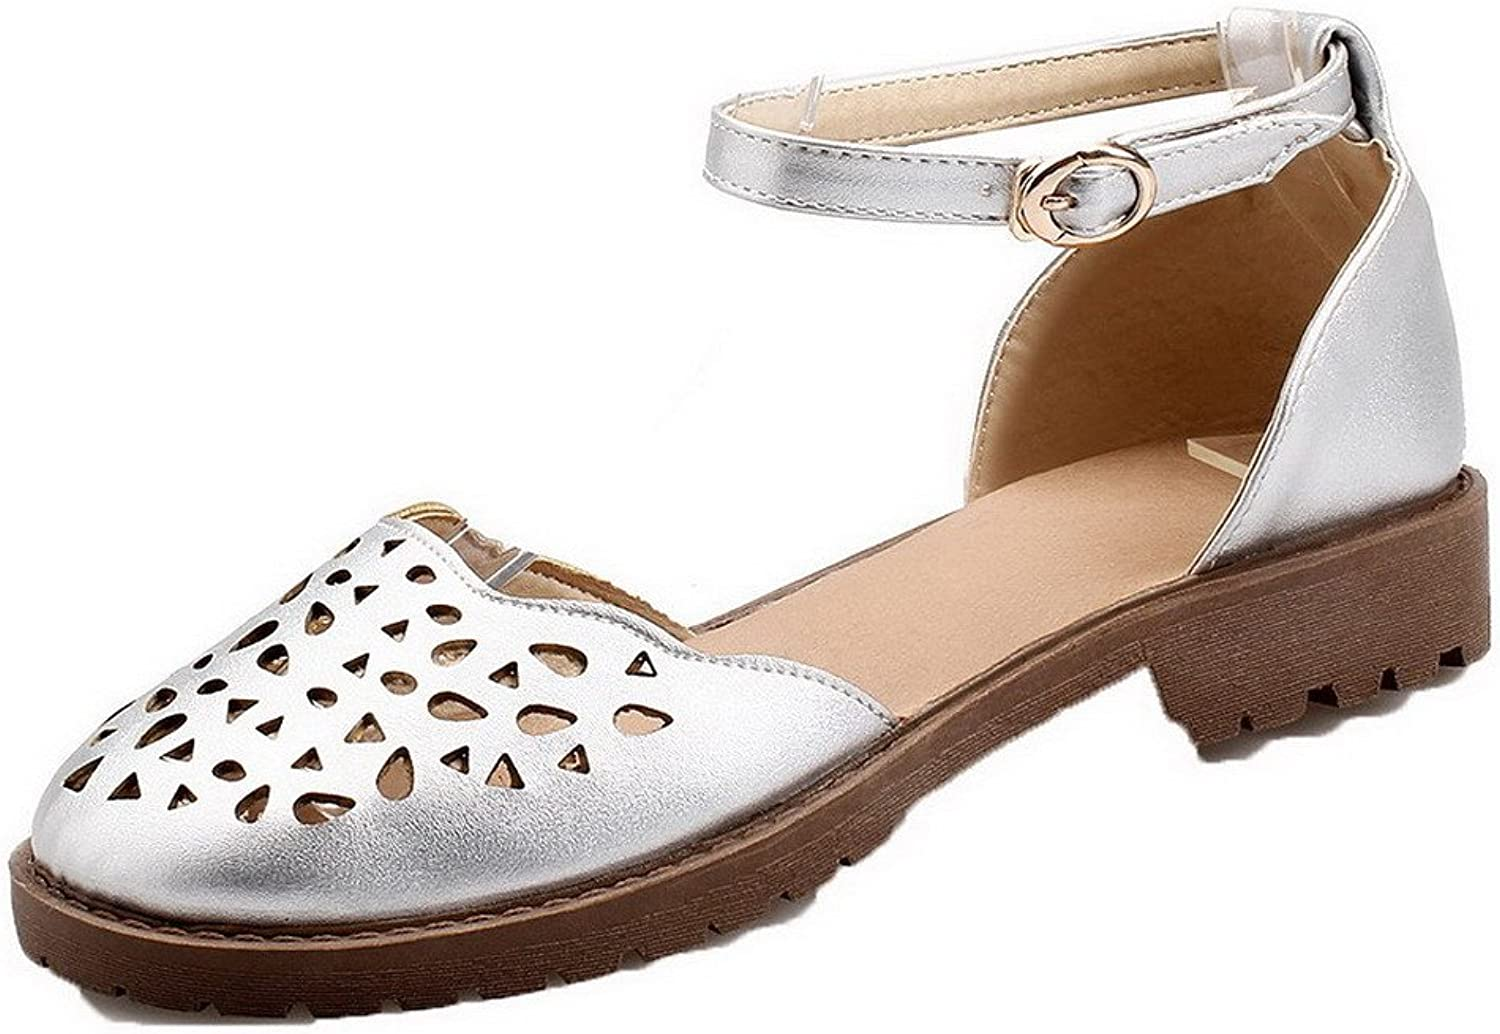 WeiPoot Women's Solid Pu Low-Heels Closed Toe Sandals